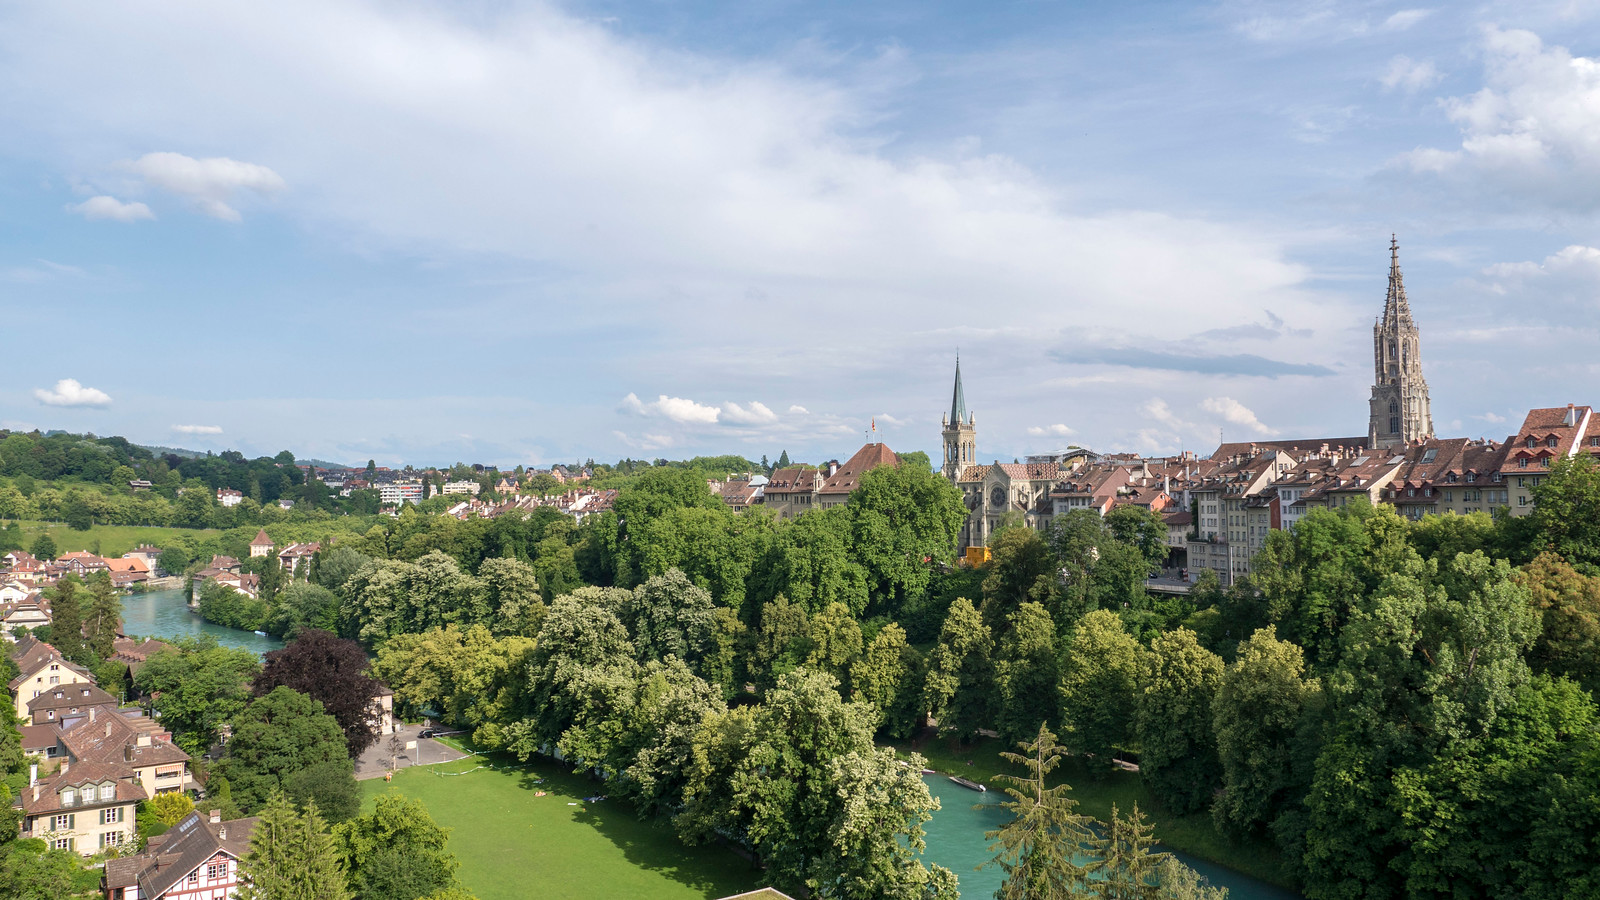 5 Spectacular Things to Do in Bern Switzerland - City View with the River